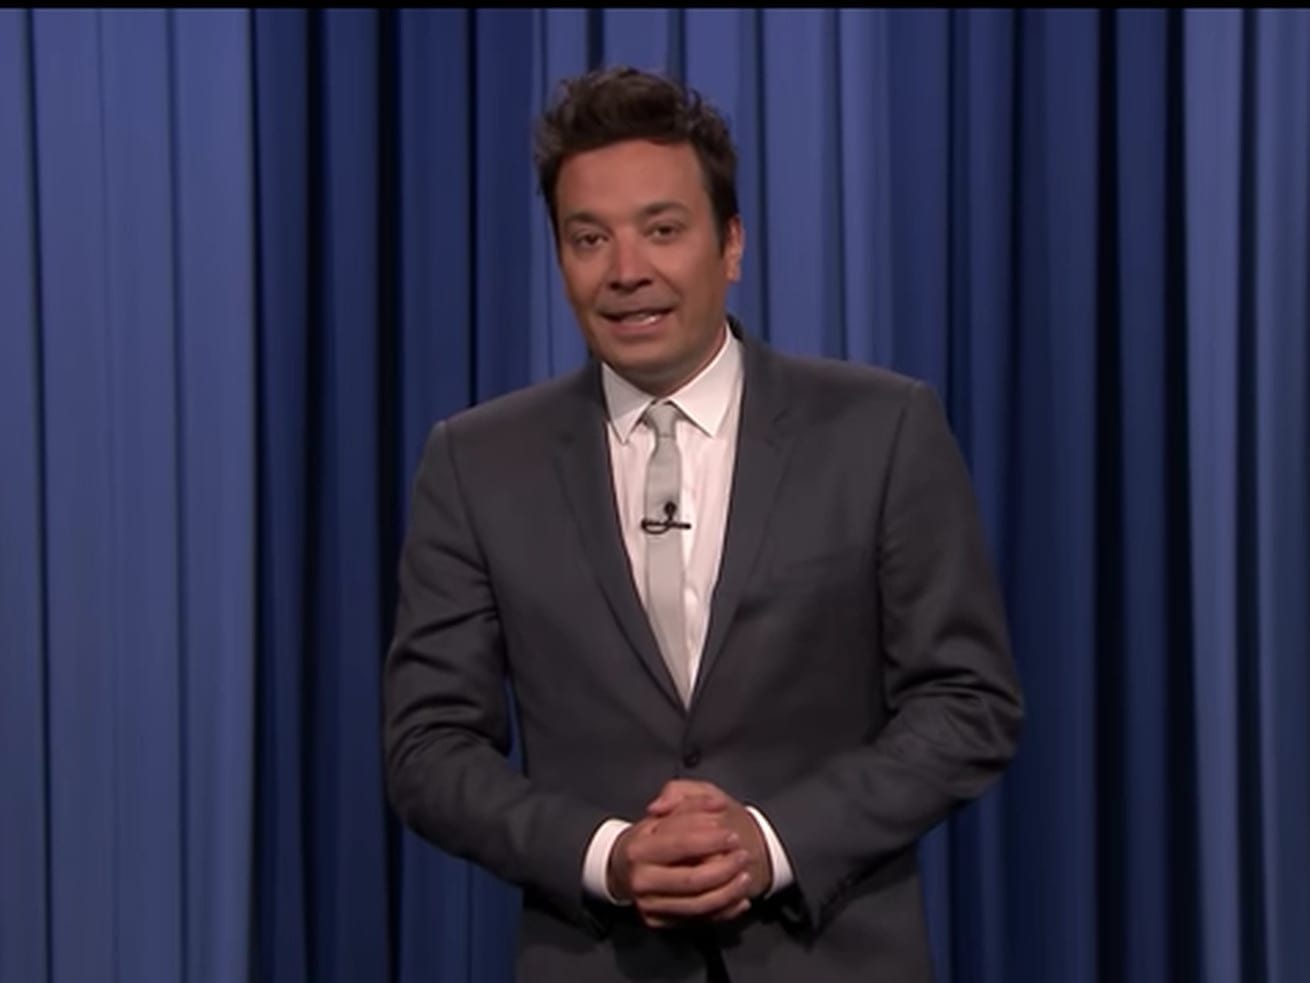 Screen_Shot_2018_06_26_at_10.52.40_AM.0 Jimmy Fallon thinks Donald Trump has more important things to do than make fun of him on Twitter